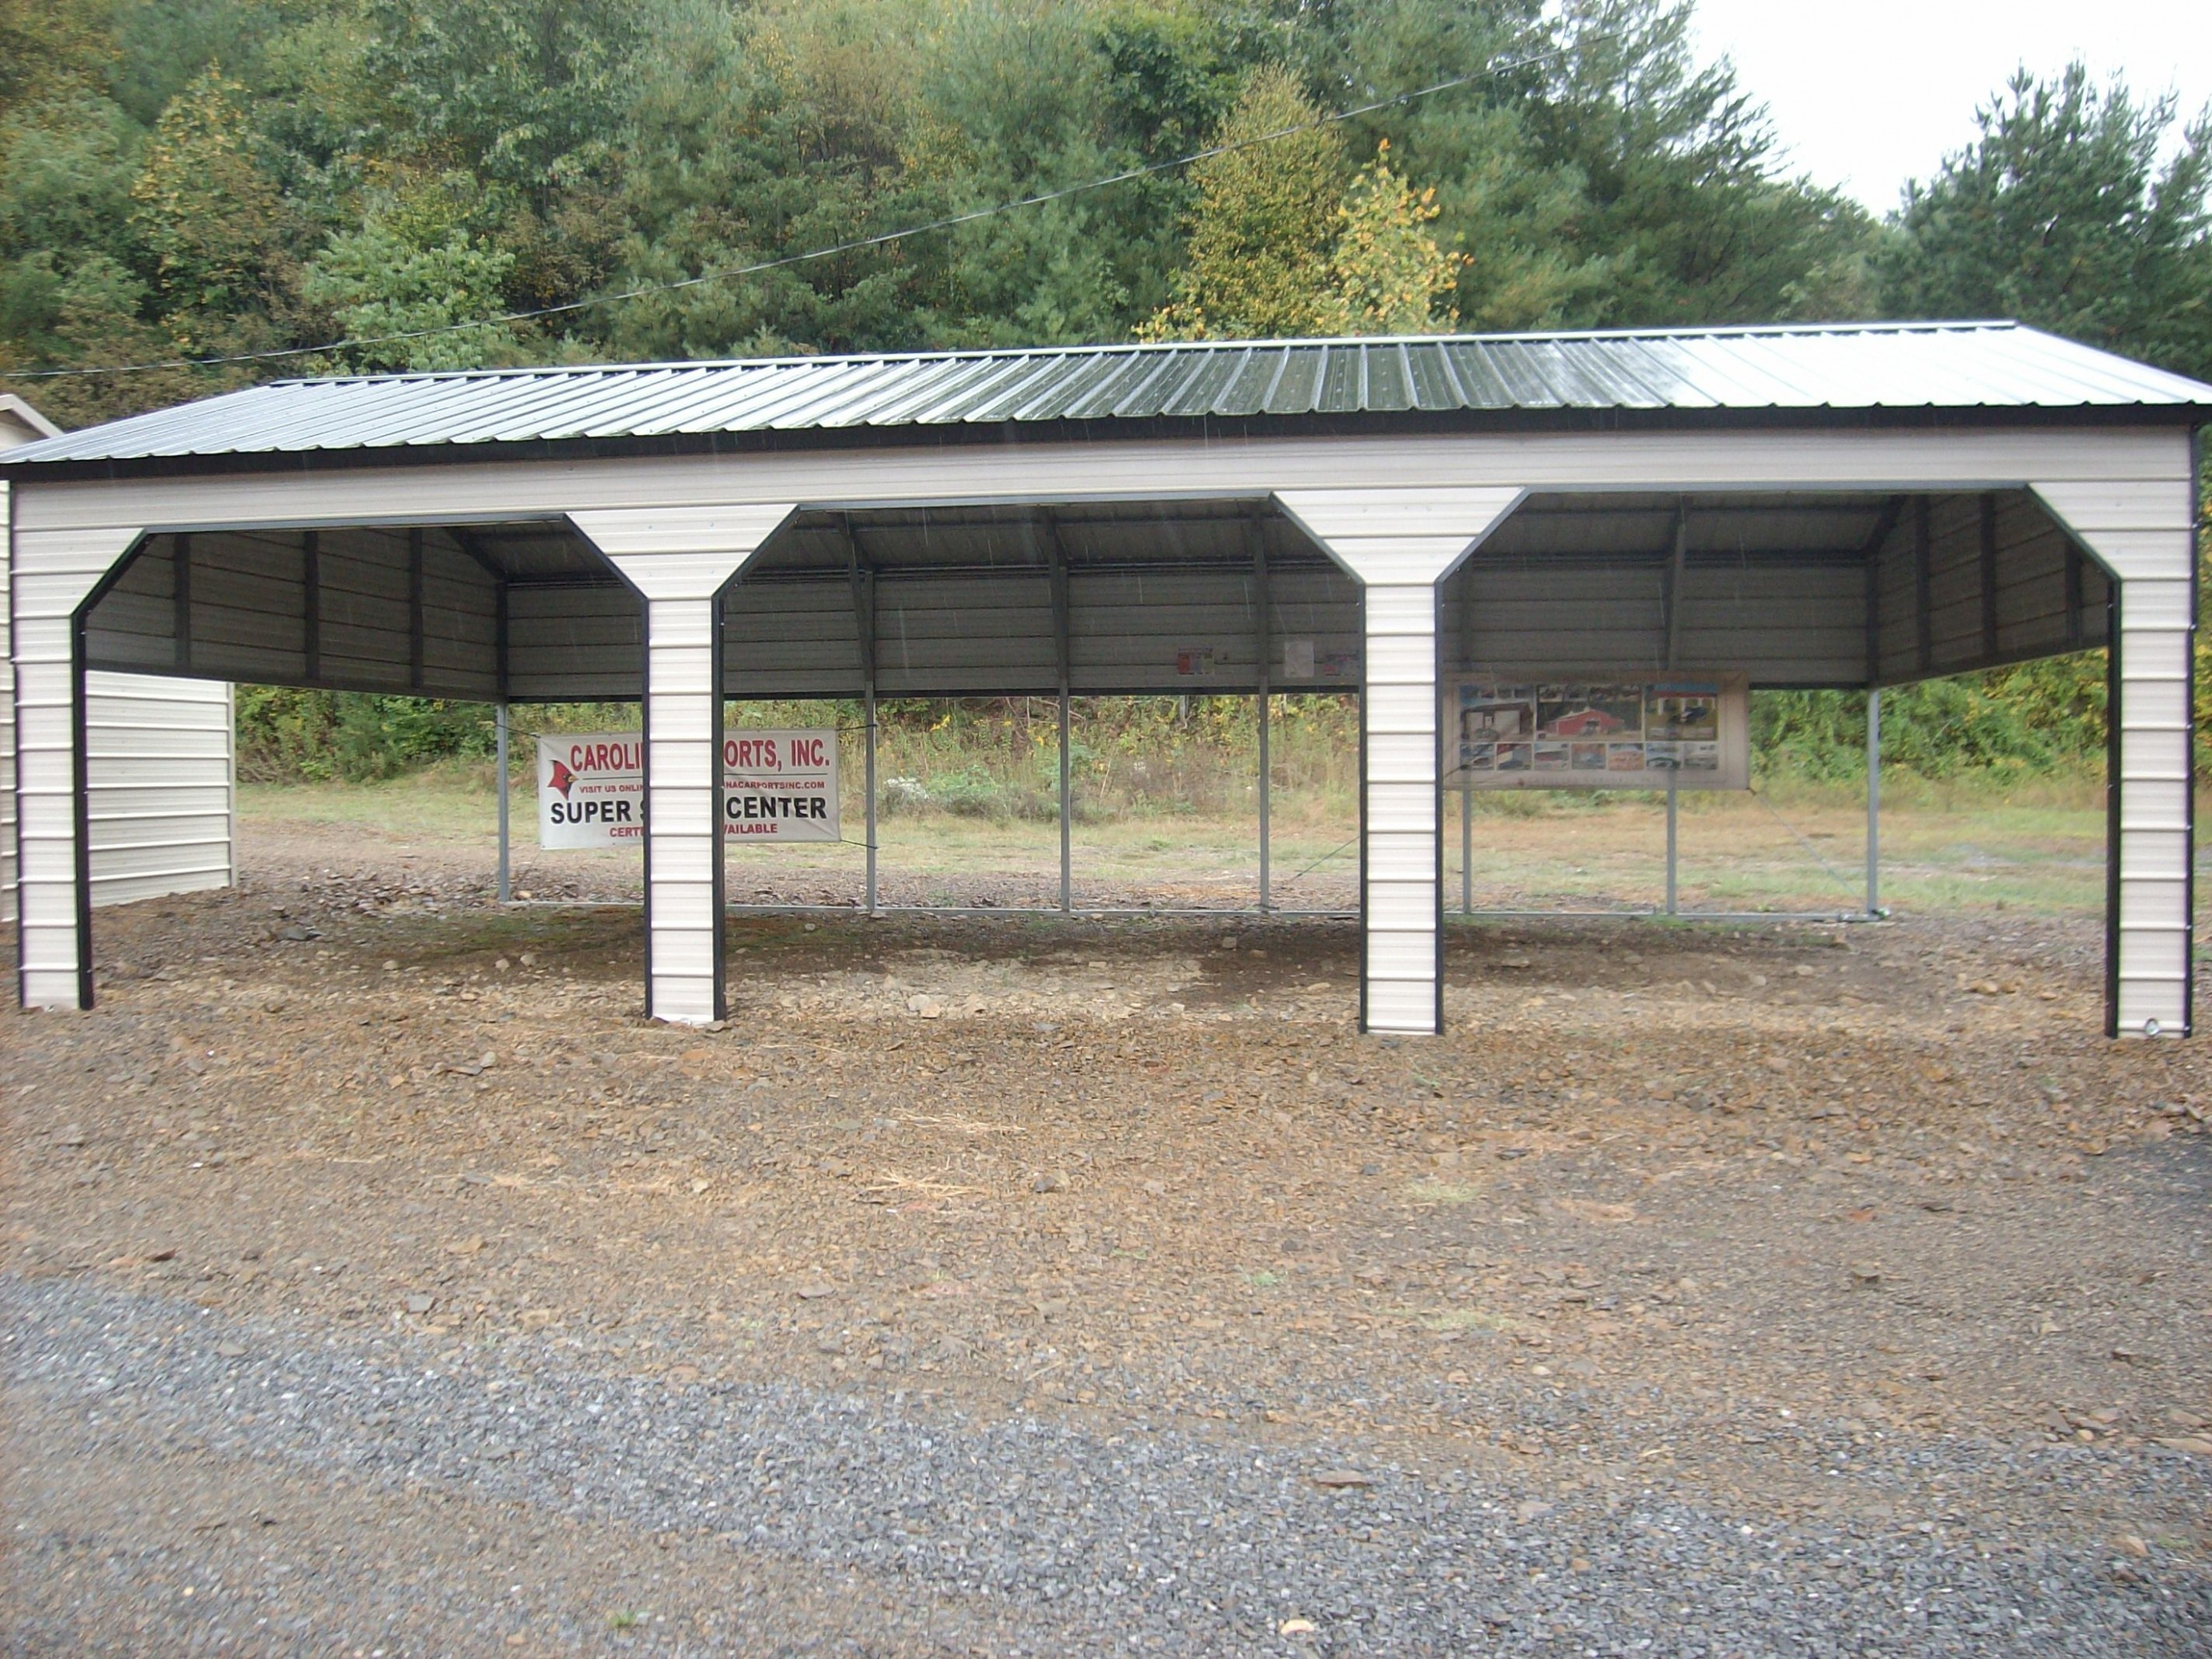 Wooden Carports For Sale Uk Will Be A Thing Of The Past And Here's Why | wooden carports for sale uk